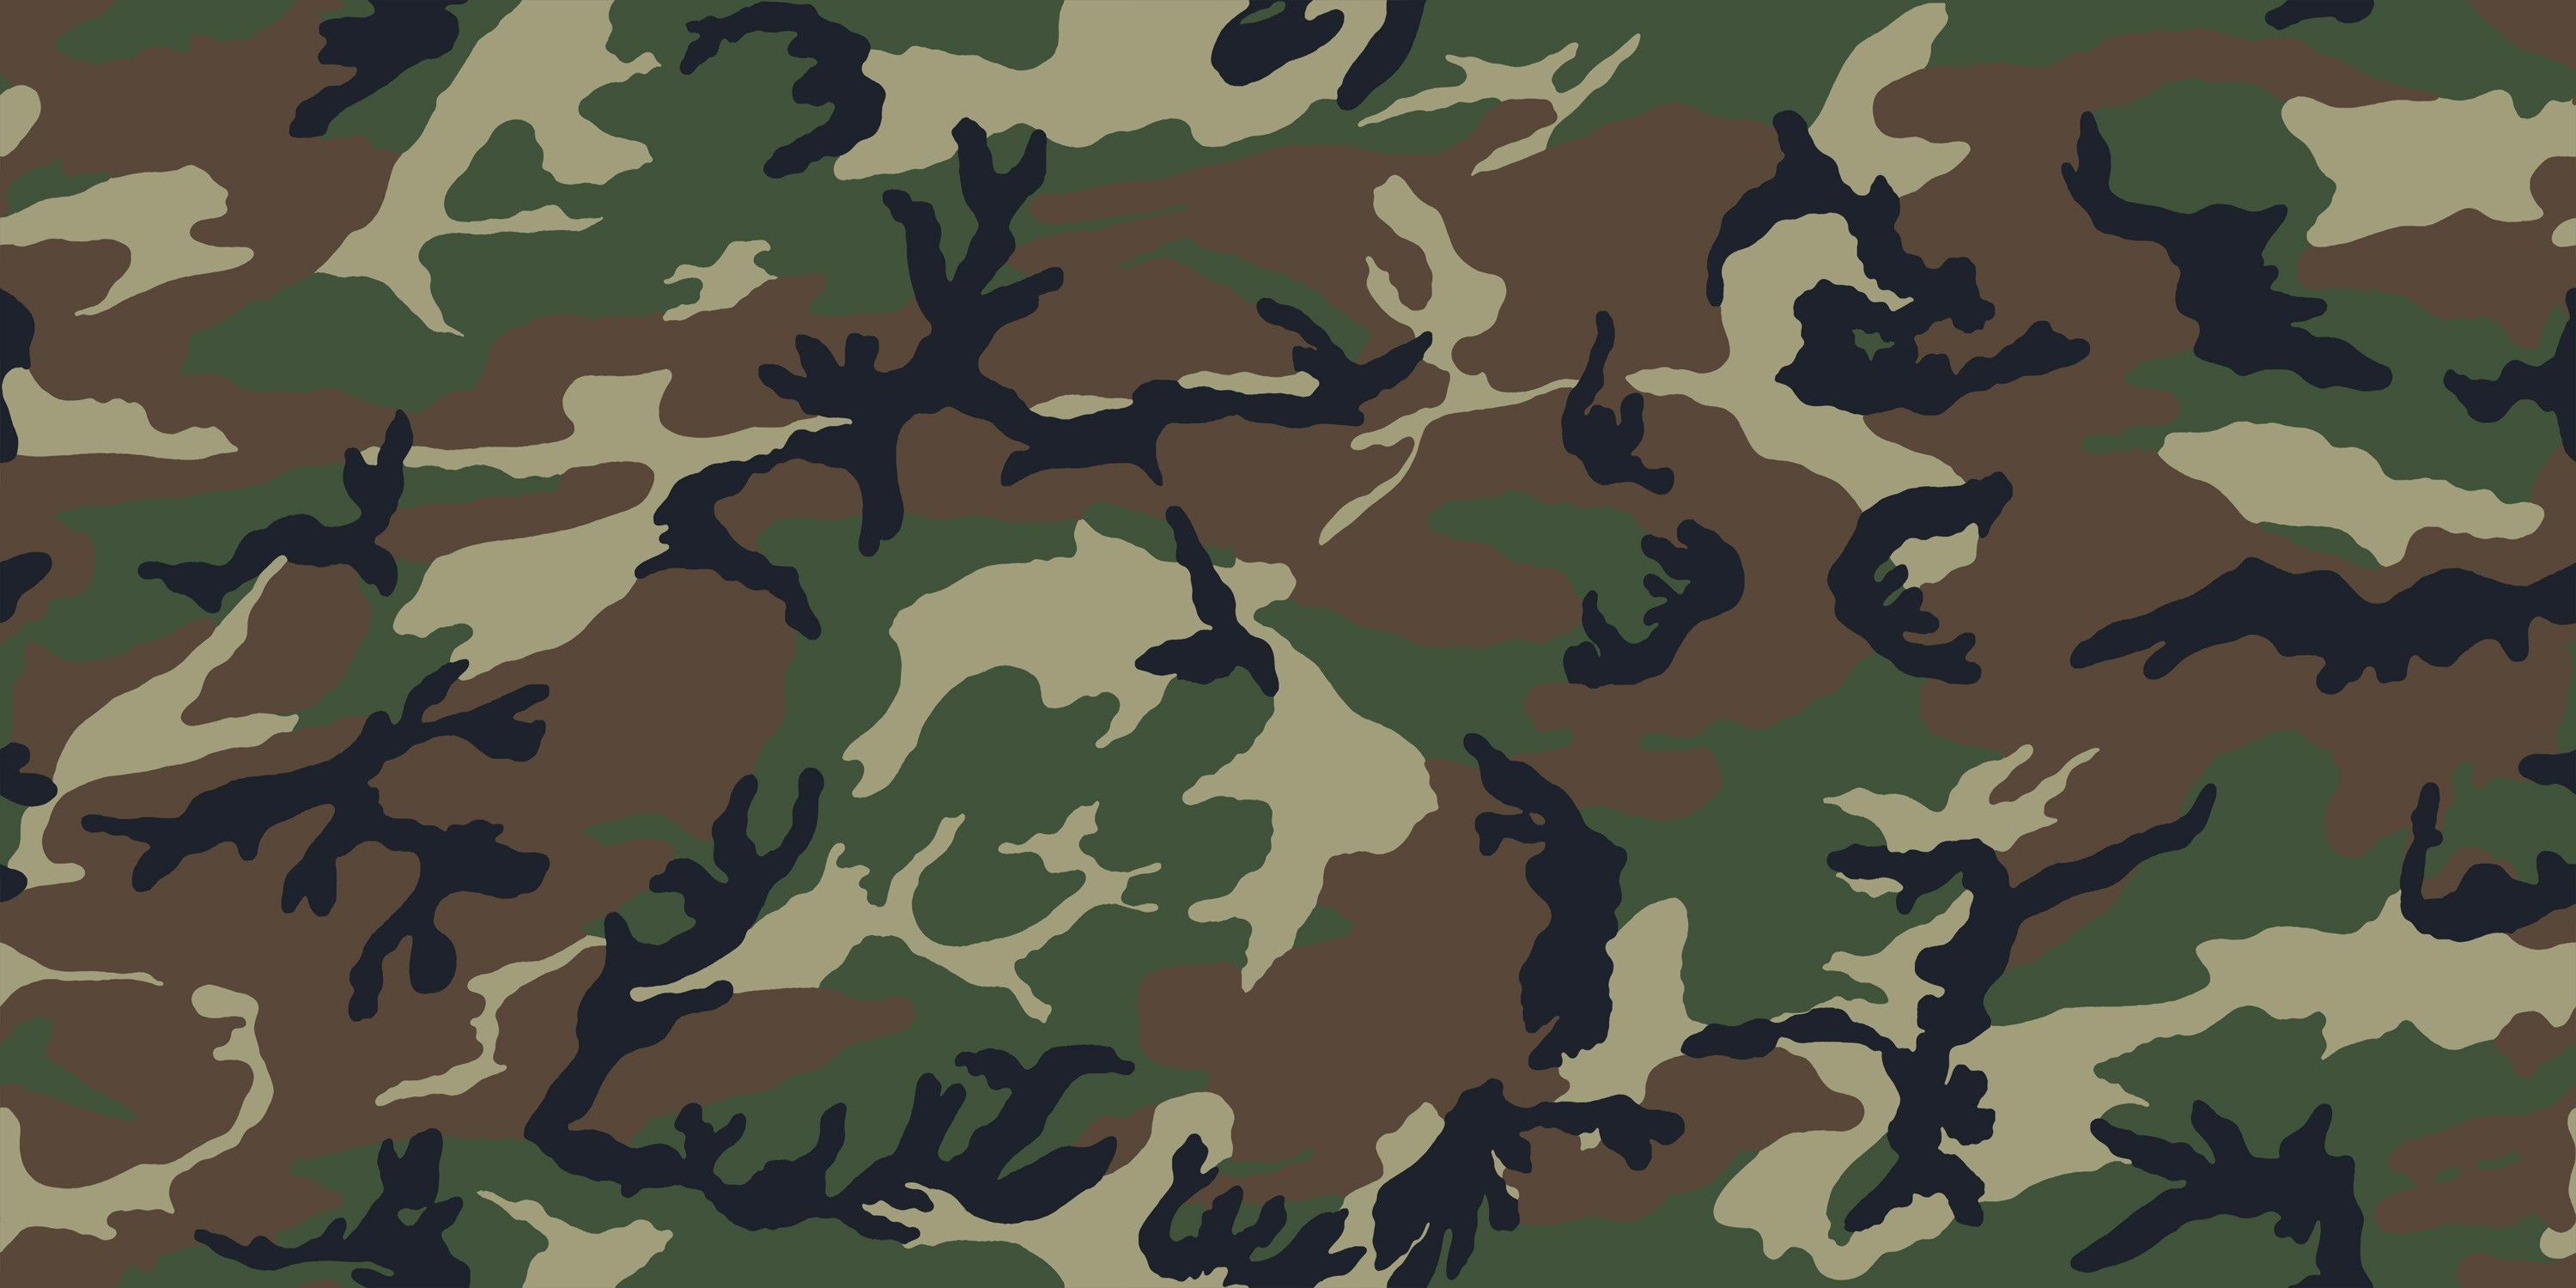 Download Free Camouflage Wallpaper 8 Wallpaper Background Hd HD #6410